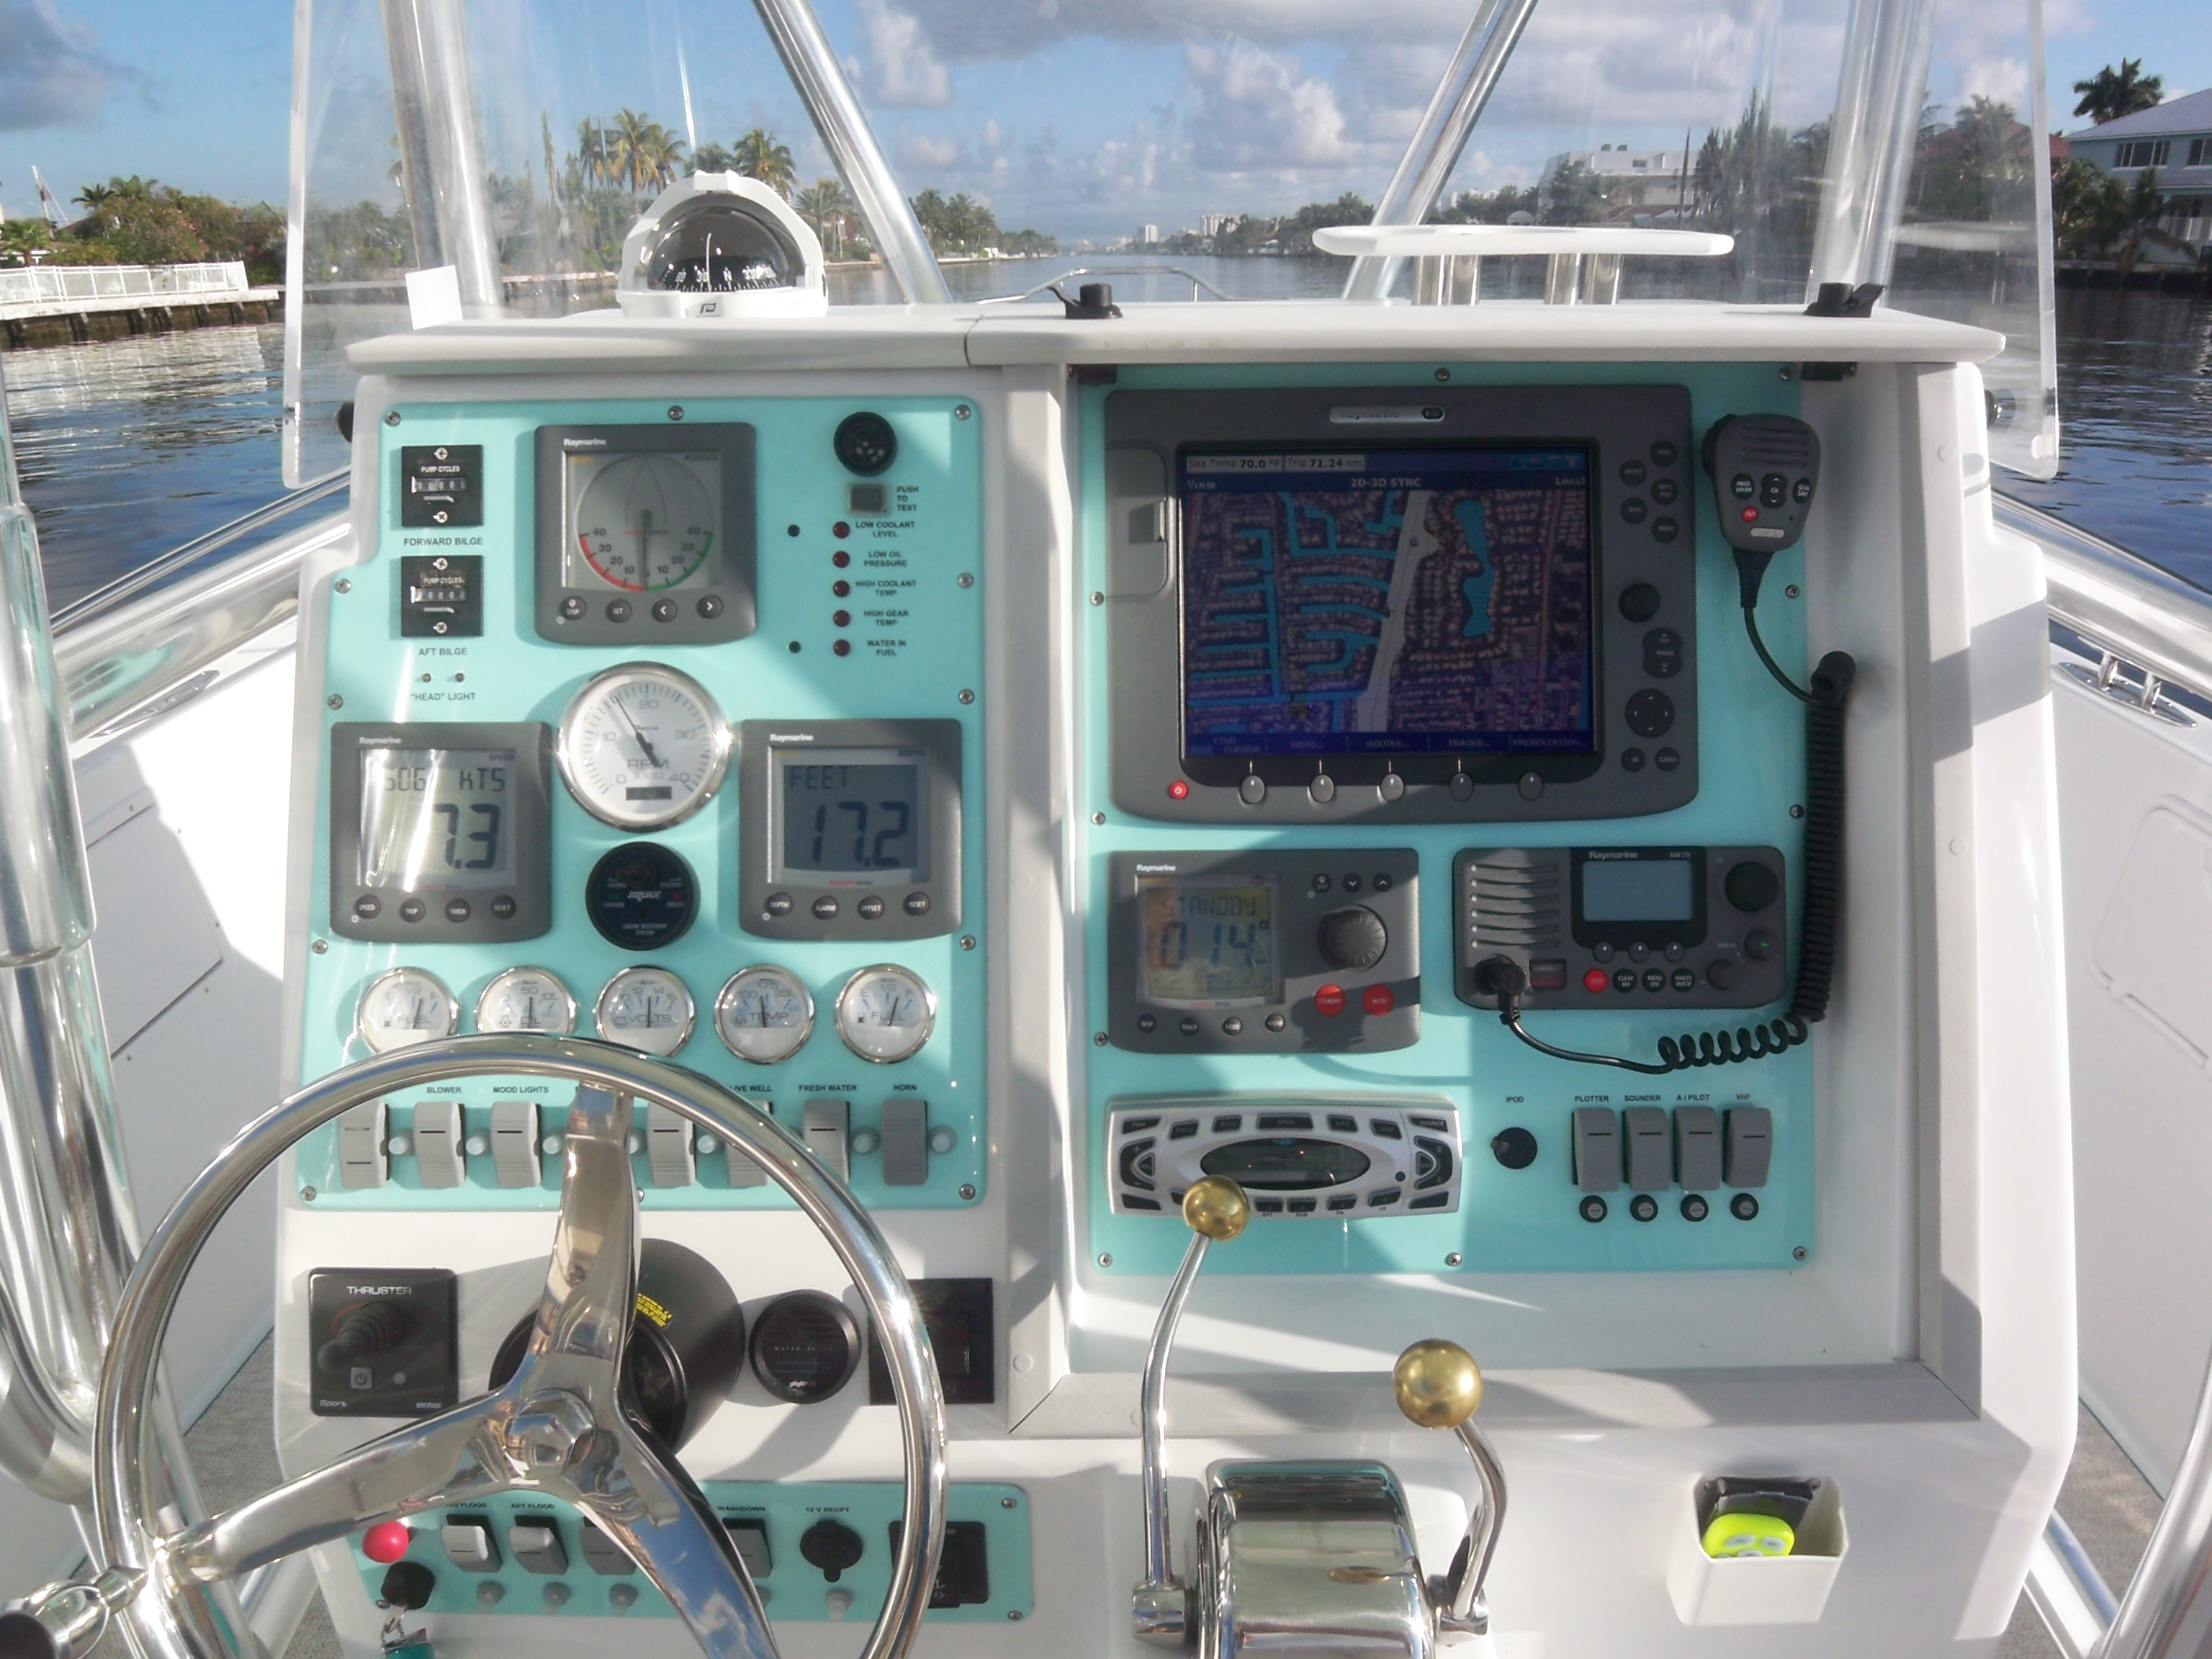 CUSTOM BOAT FISHING DASH PANEL